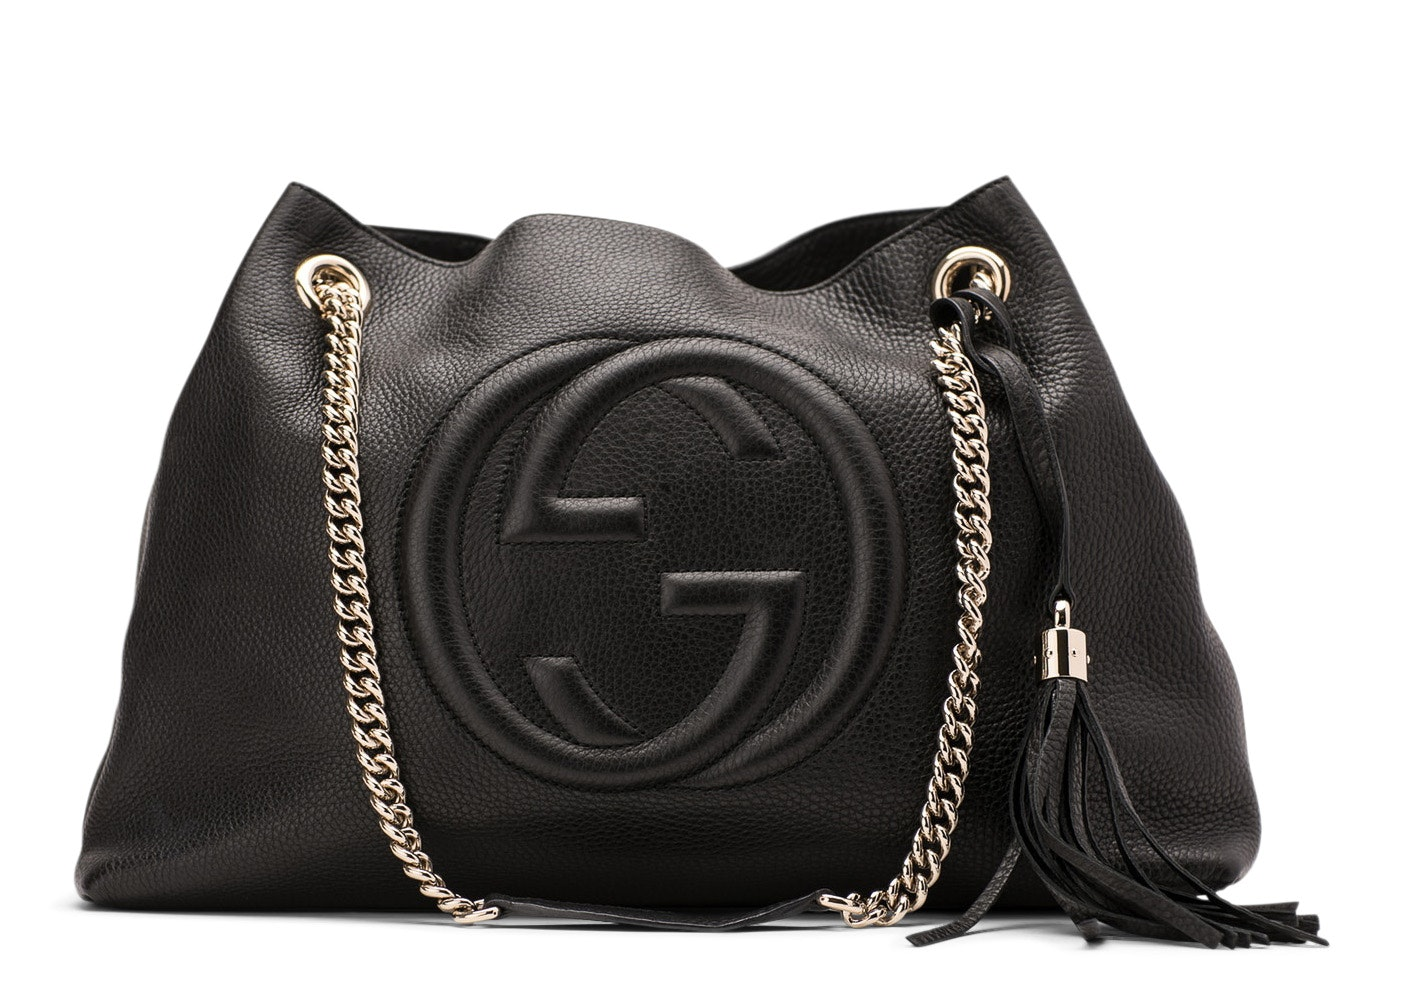 Gucci Soho  Shoulder Bag GG Interlocking G Medium Black